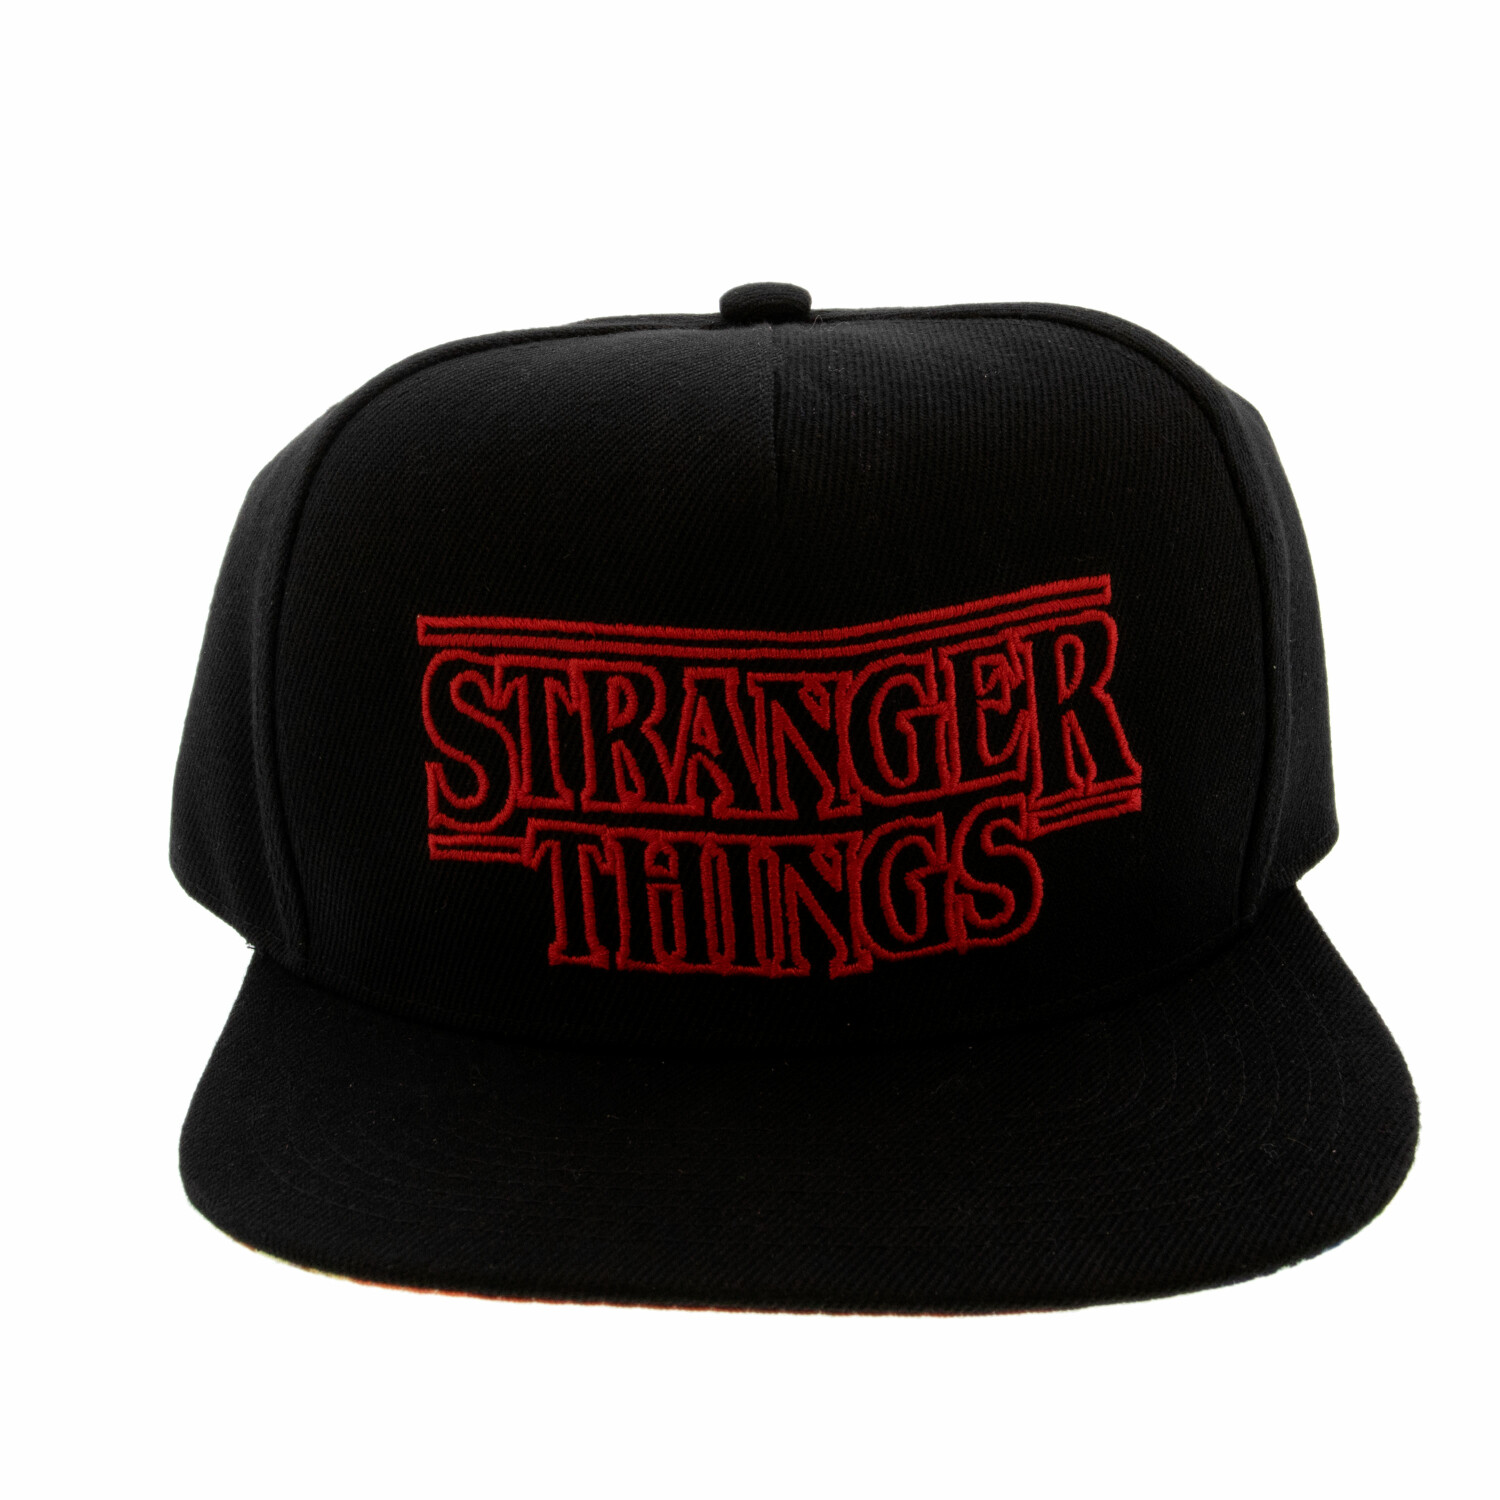 Stranger Things Flat Bill Logo Hat, Adjustable,Under Bill Design - One Size - Black / Red